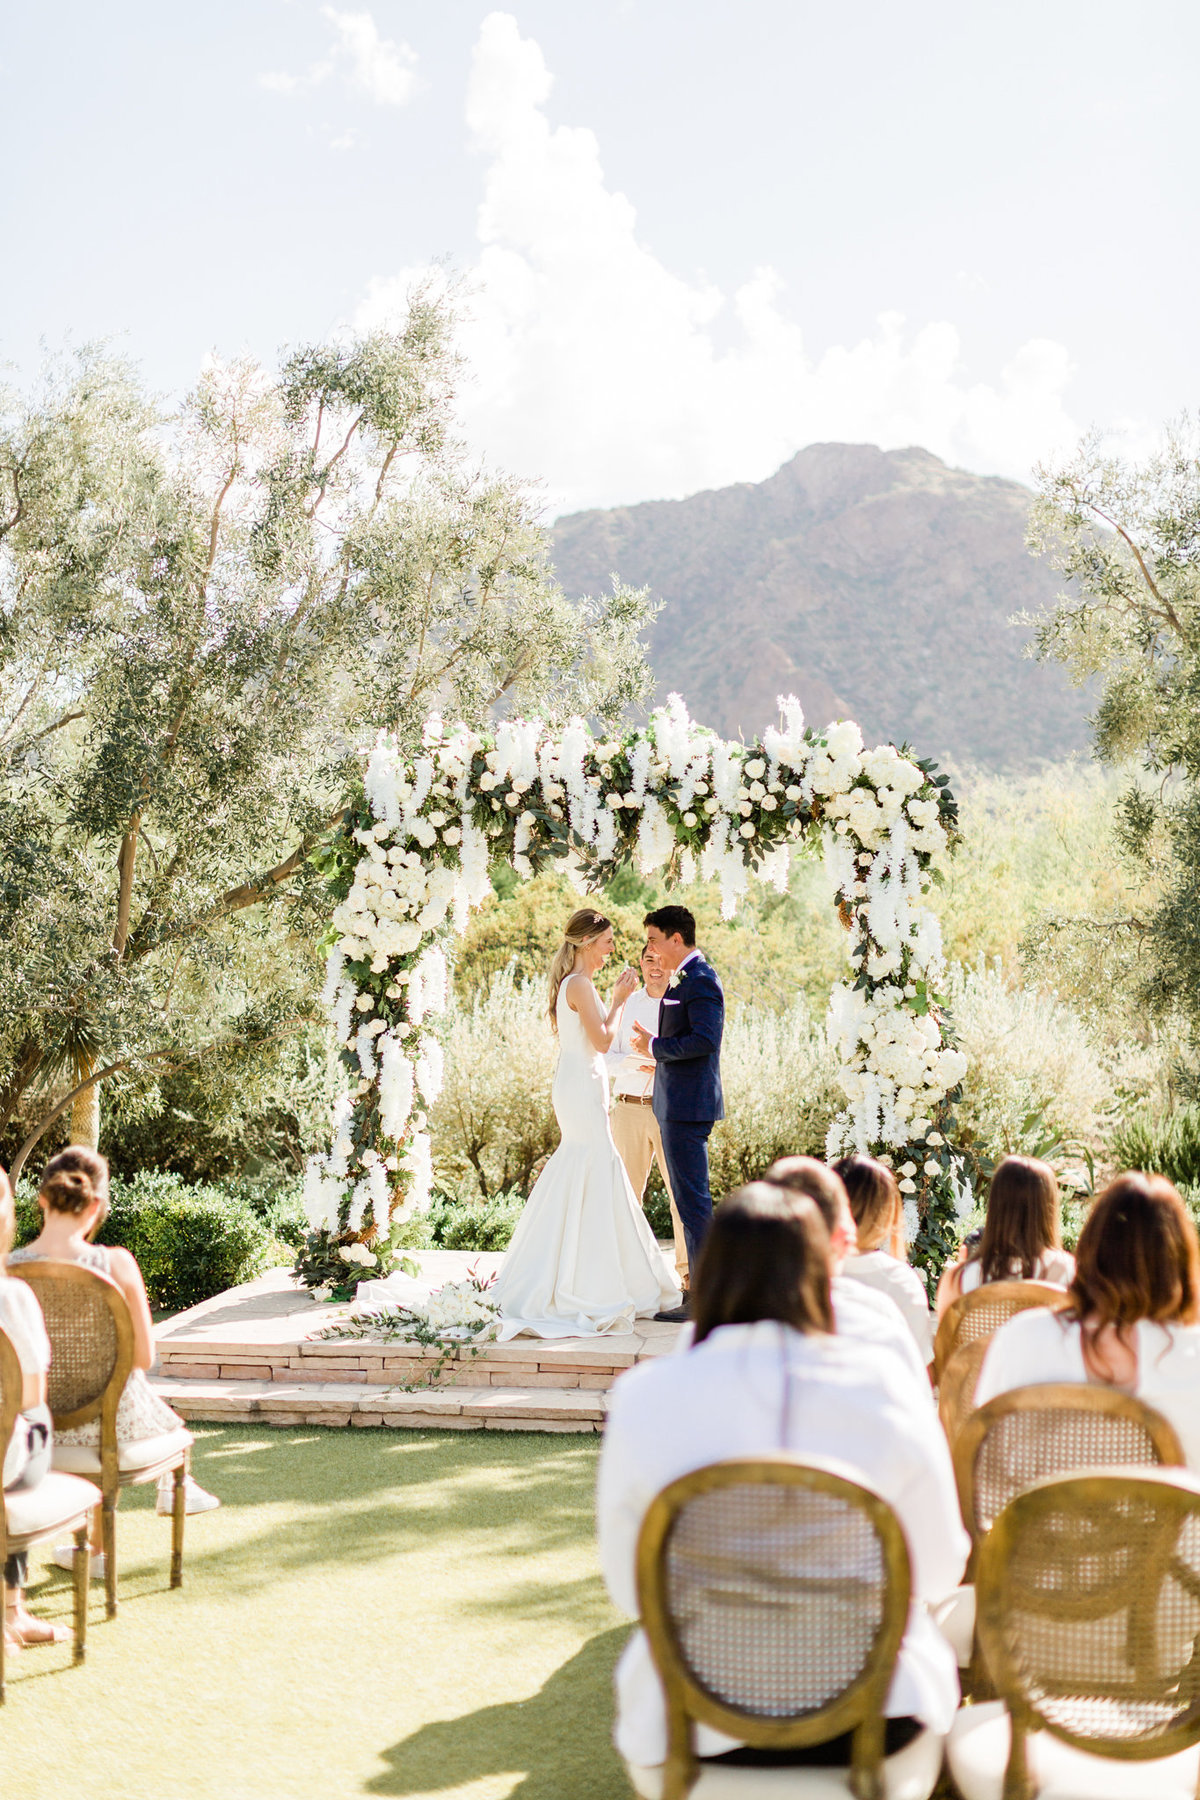 wedding ceremony for a fall wedding at el chorro weddings in paradise arizona